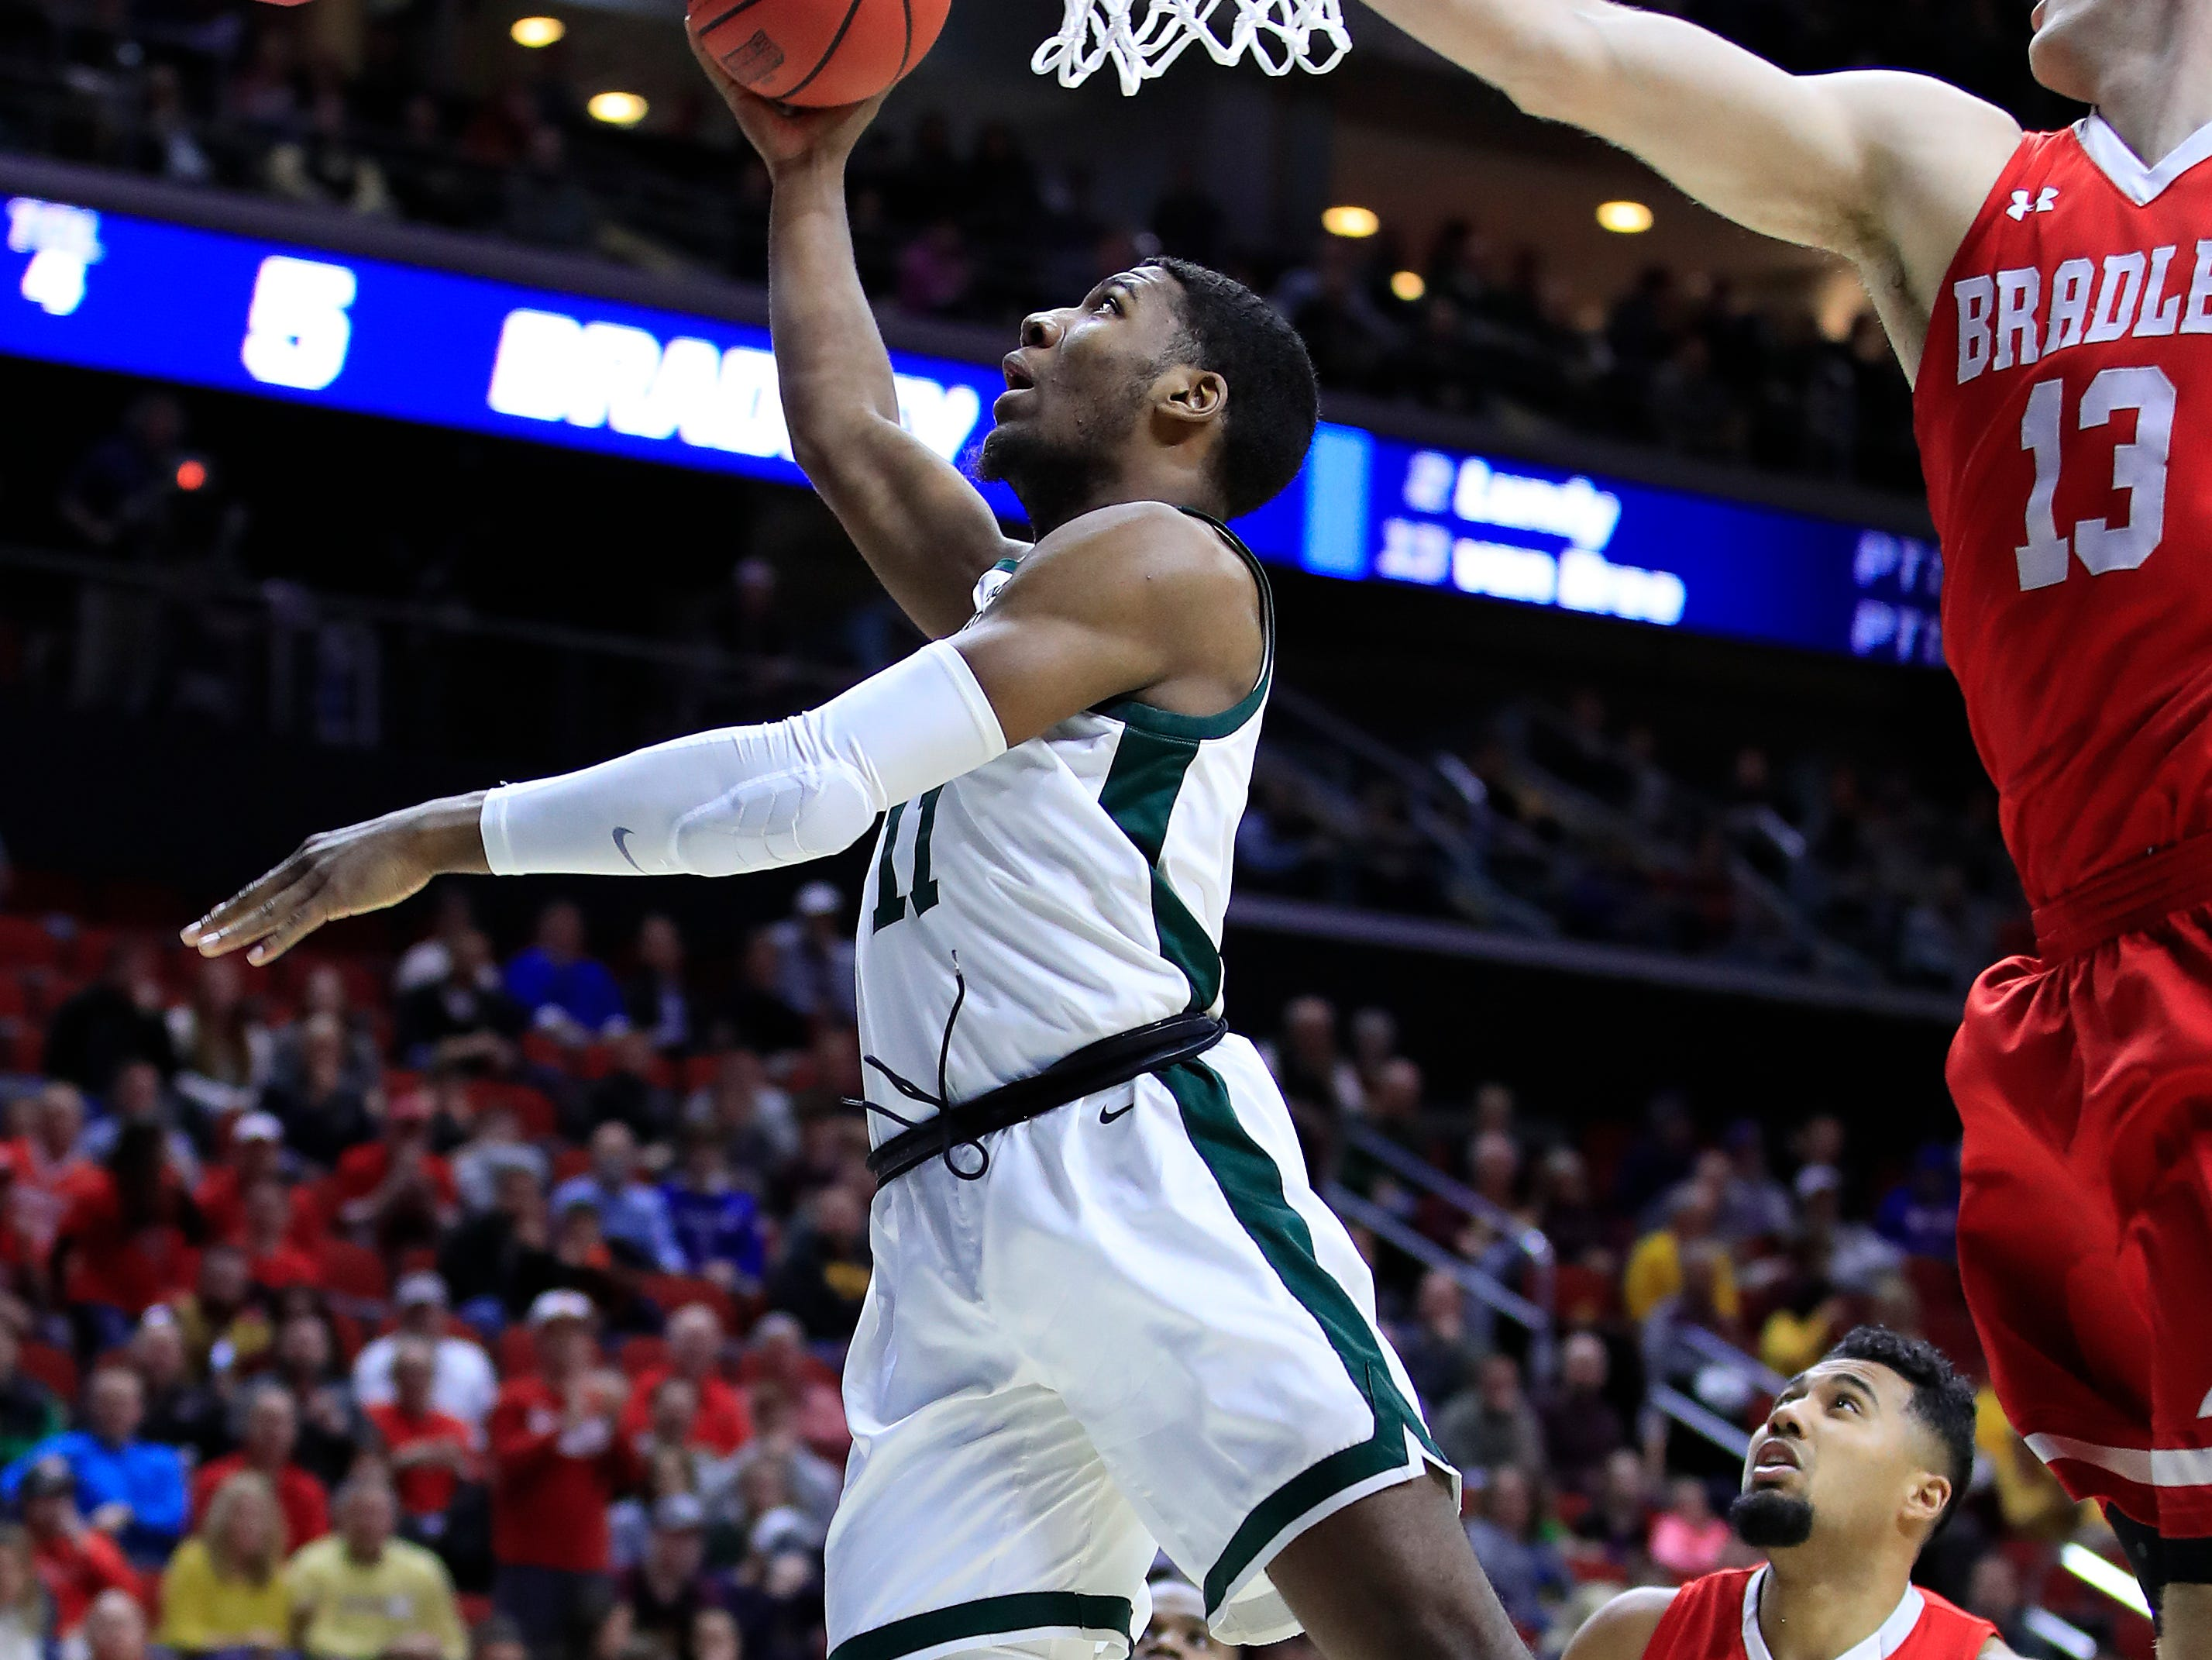 Aaron Henry #11 of the Michigan State Spartans goes up for a shot against the Bradley Braves during their game in the First Round of the NCAA Basketball Tournament at Wells Fargo Arena on March 21, 2019 in Des Moines, Iowa.